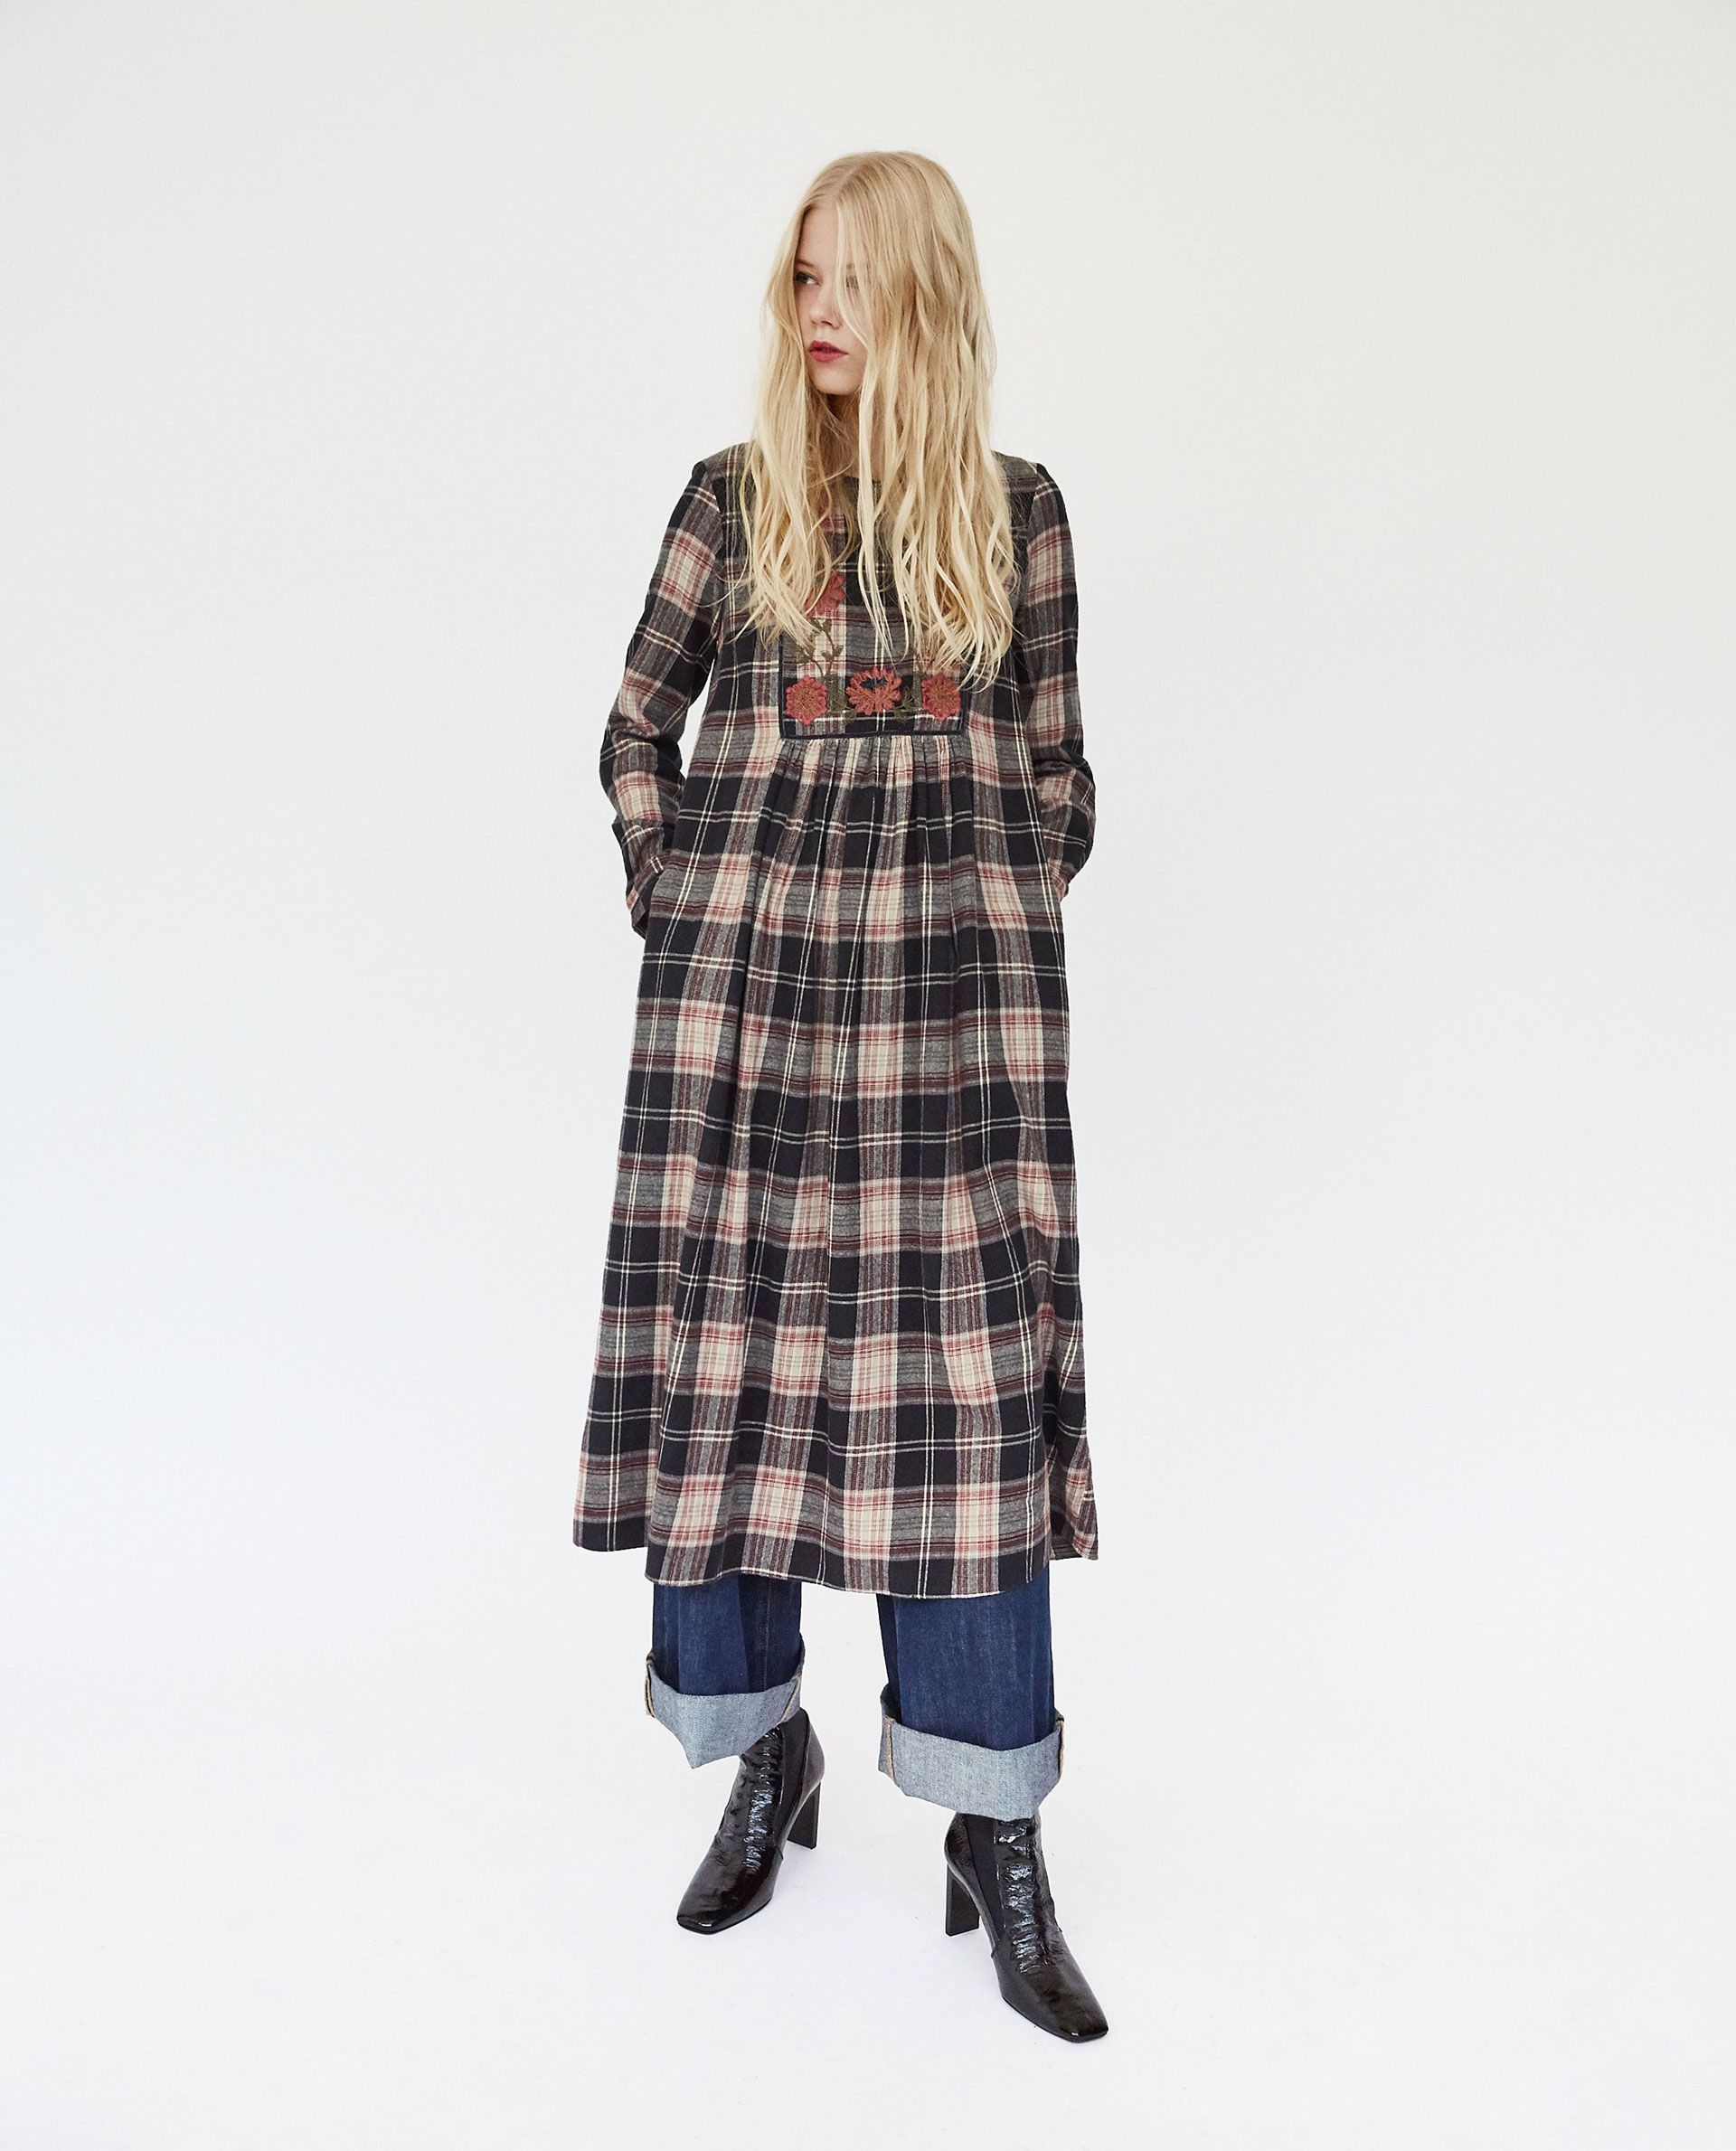 cfb82ef3 ZARA - TRF - EMBROIDERED CHECKED DRESS...kinda homely but I like it.